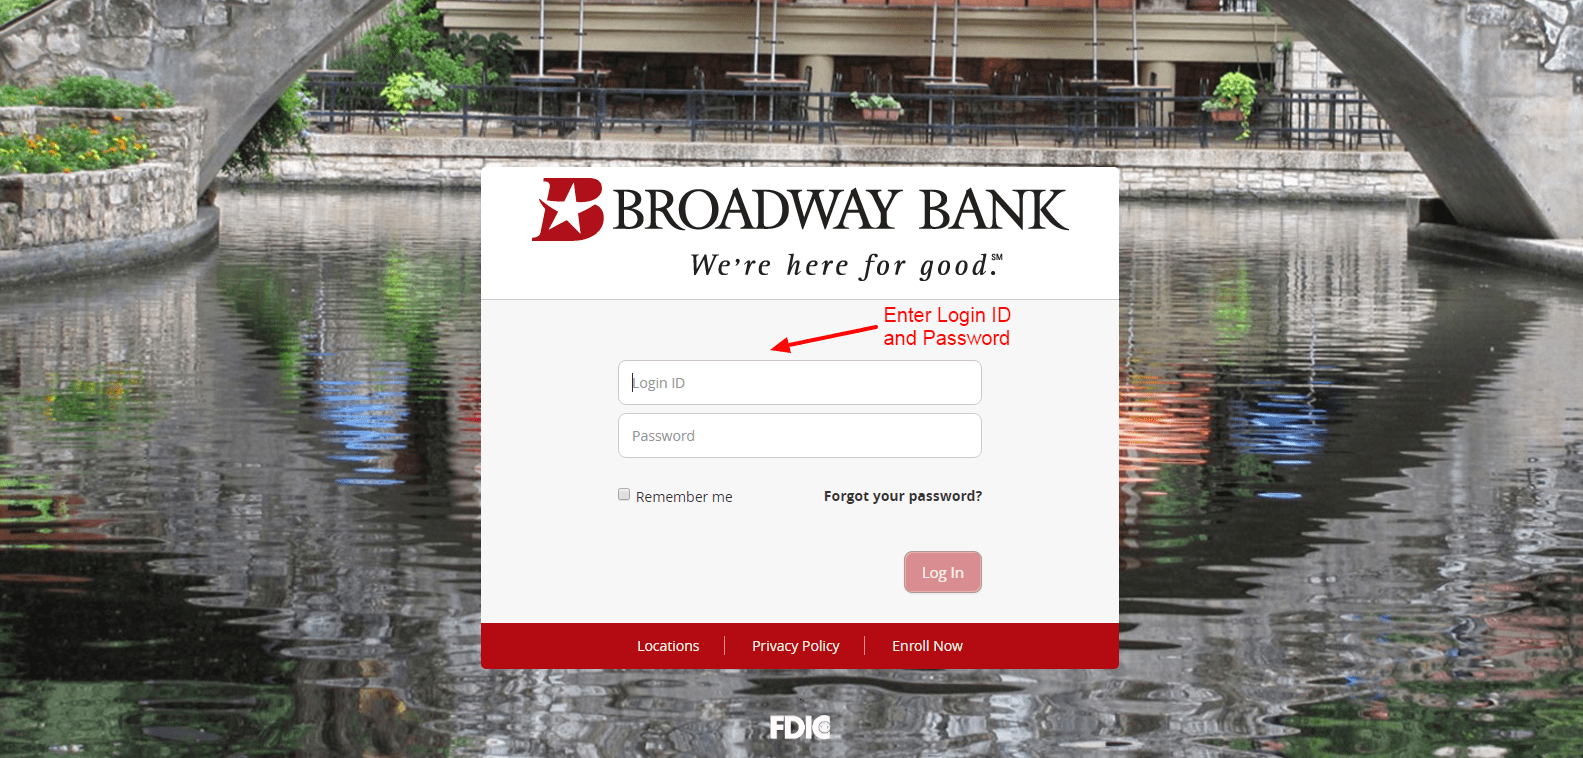 login 2 Broadway Bank